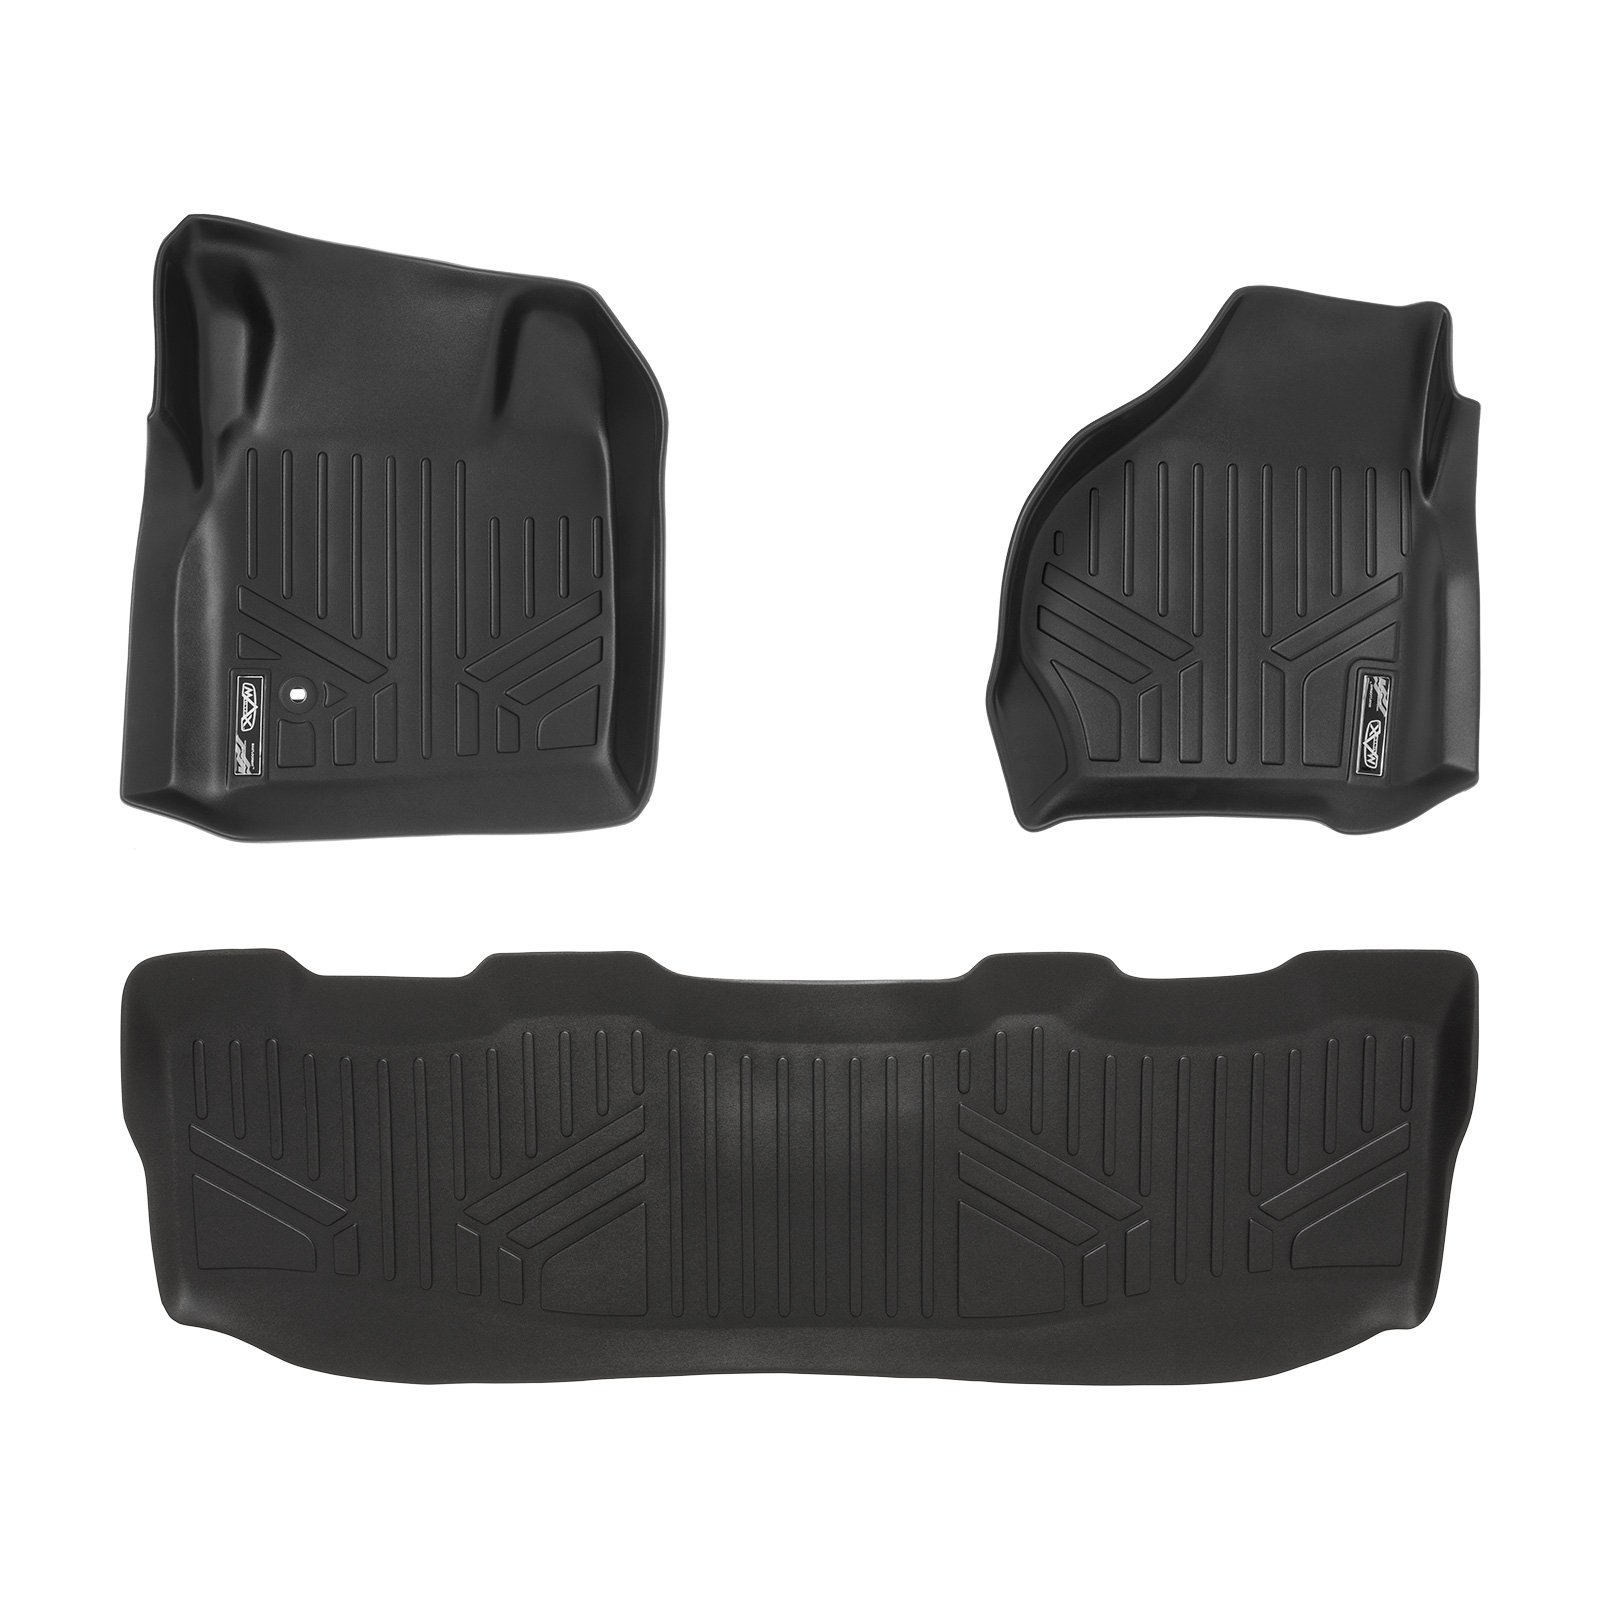 F-450 F-350 MAXLINER Floor Mats 1st Row Liner Set Black for 1999-2007 Ford F-250 // 2000-2005 Excursion F-550 Super Duty All Models